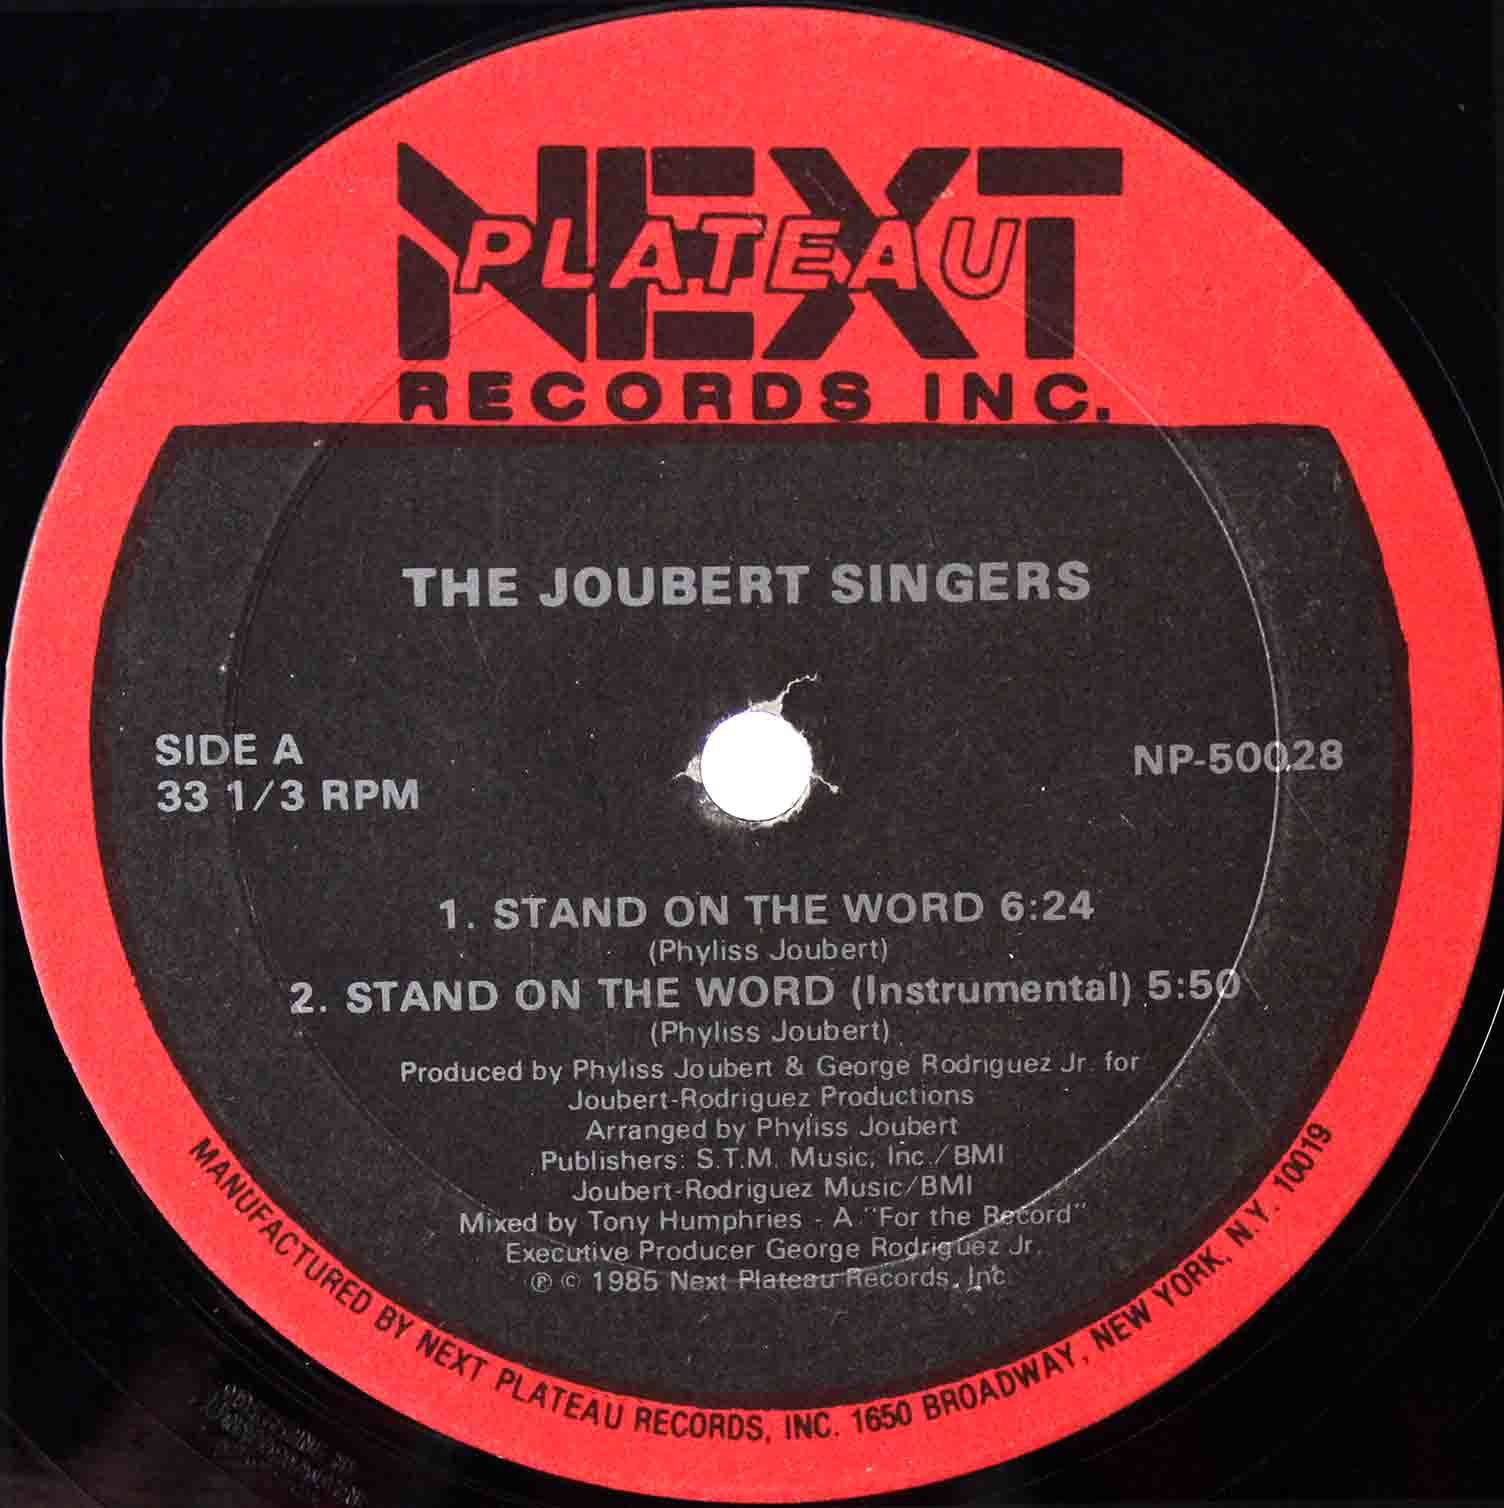 The Joubert Singers – Stand On The Word 03